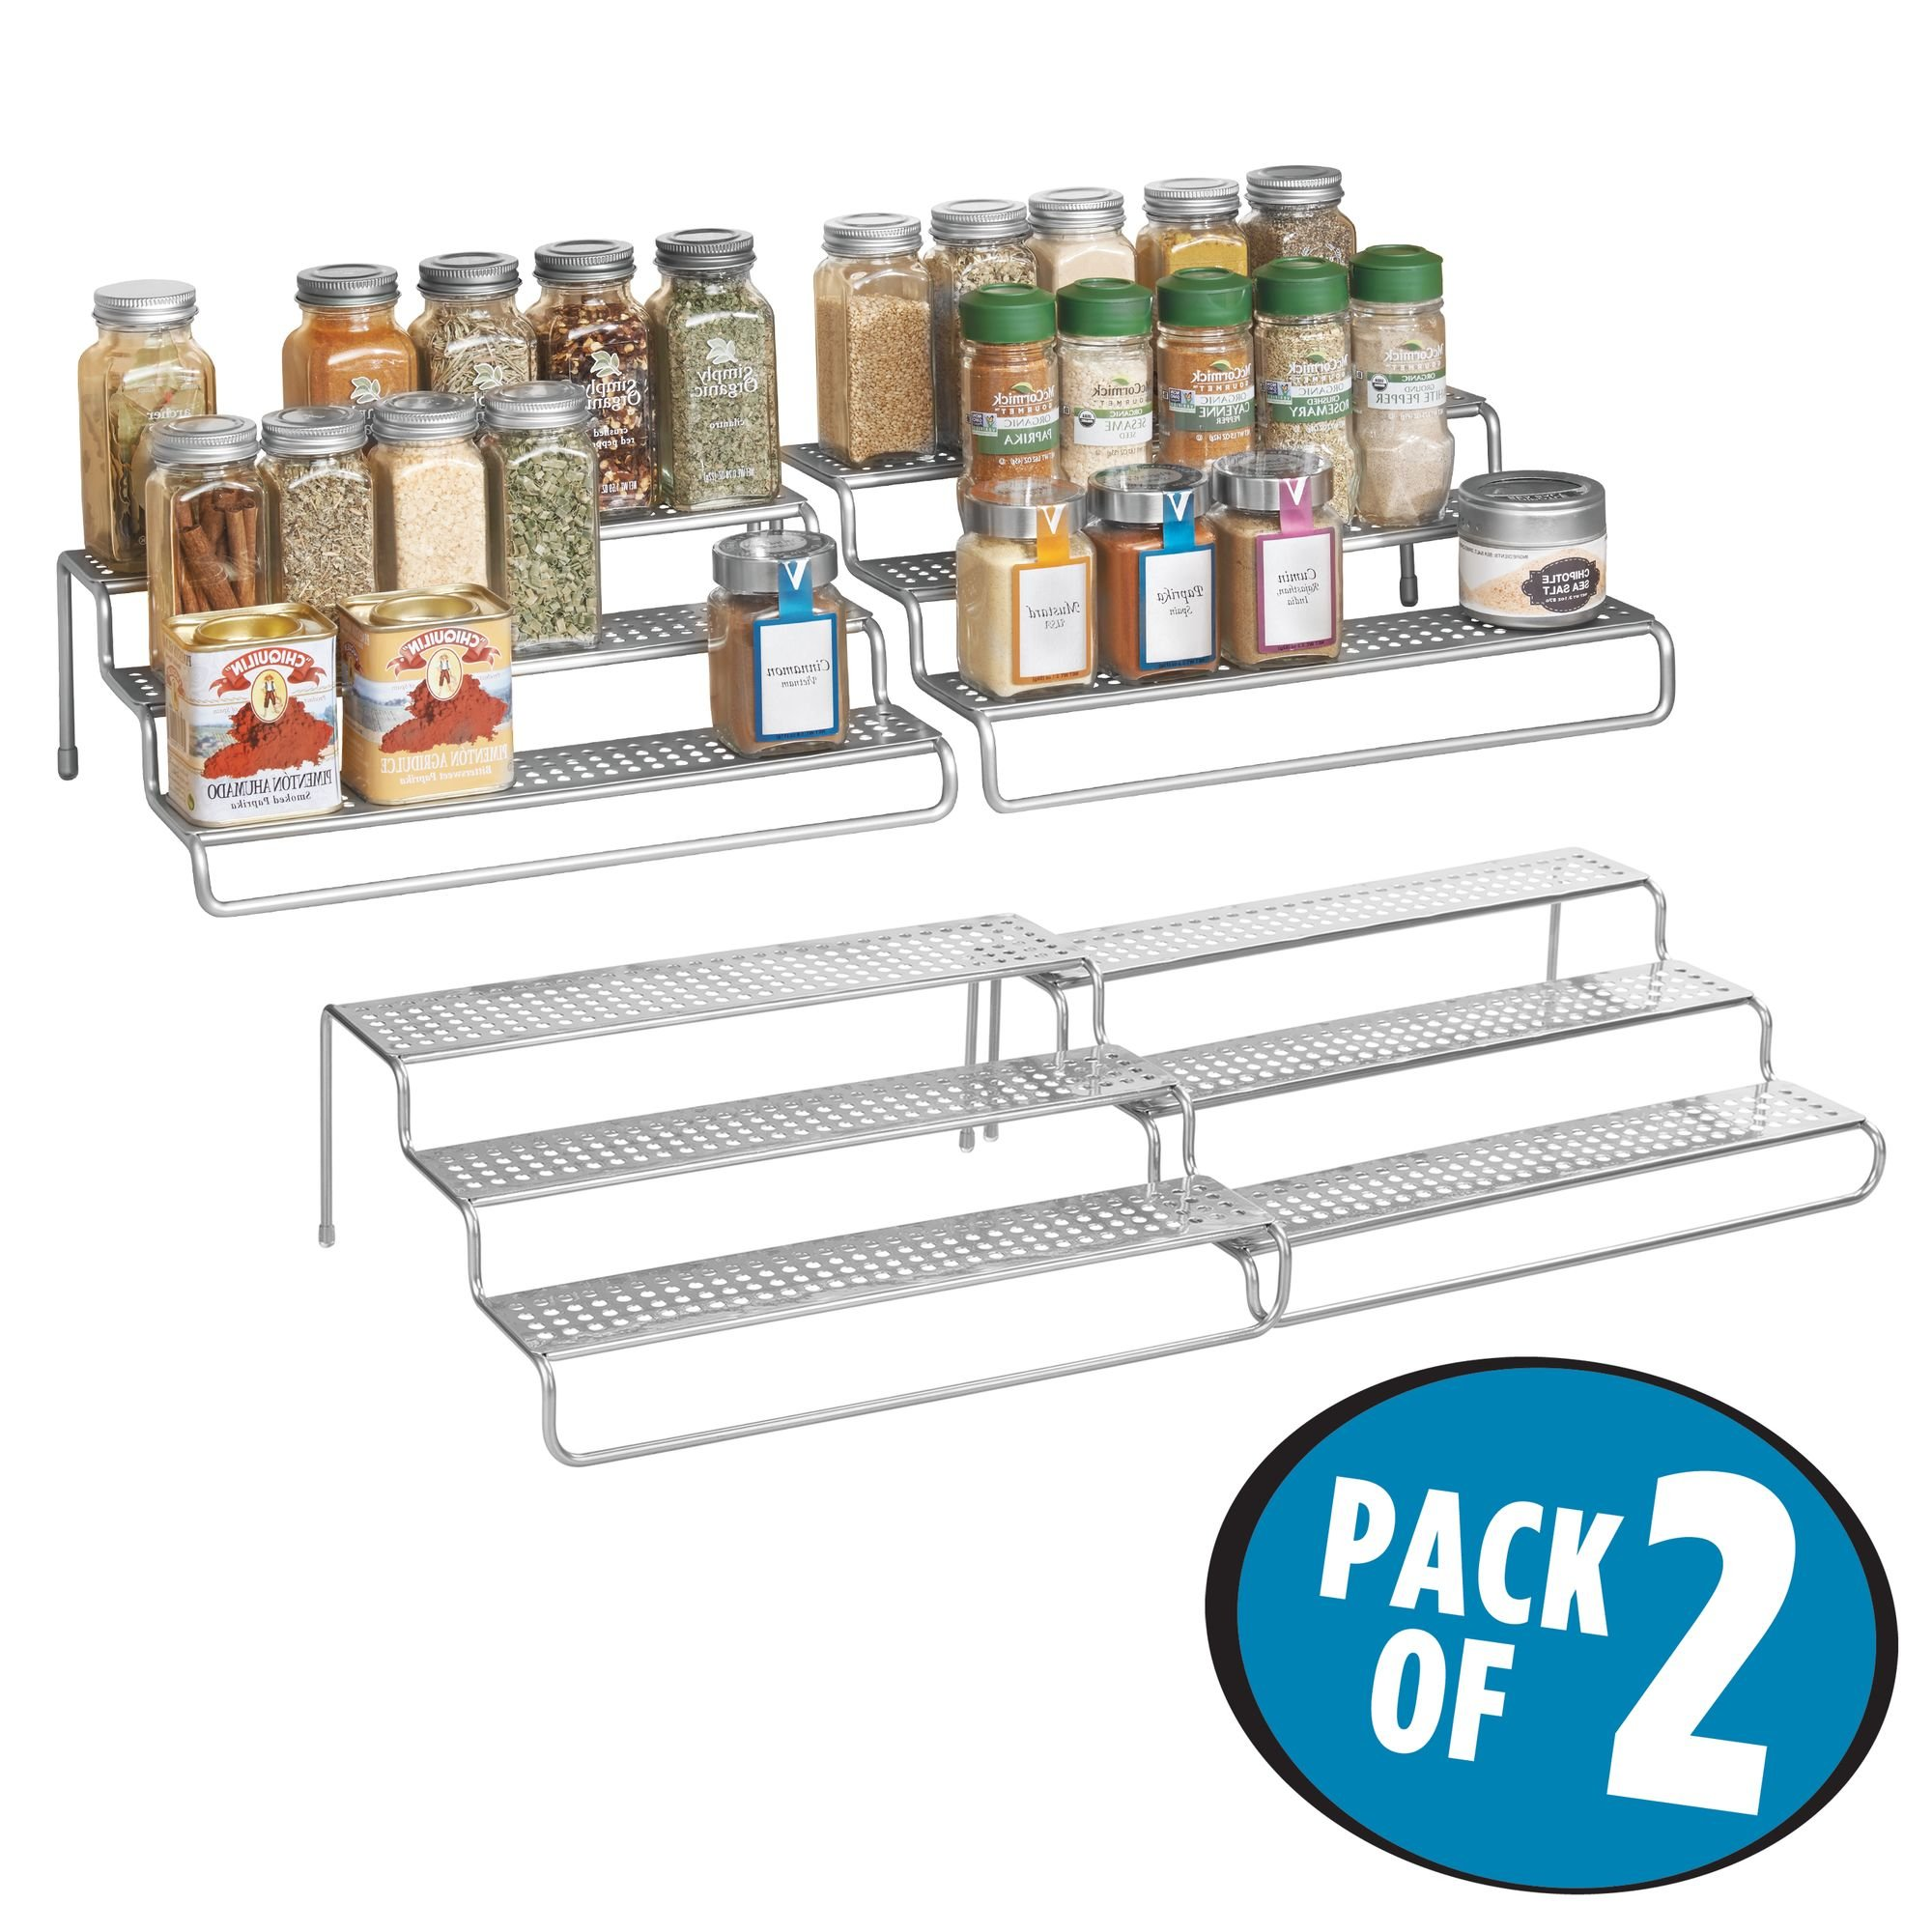 mDesign Adjustable, Expandable Kitchen Cabinet, Pantry, Shelf Organizer/Spice Rack - 3 Level Storage - Up to 25'' Wide, Pack of 2, Silver Finish